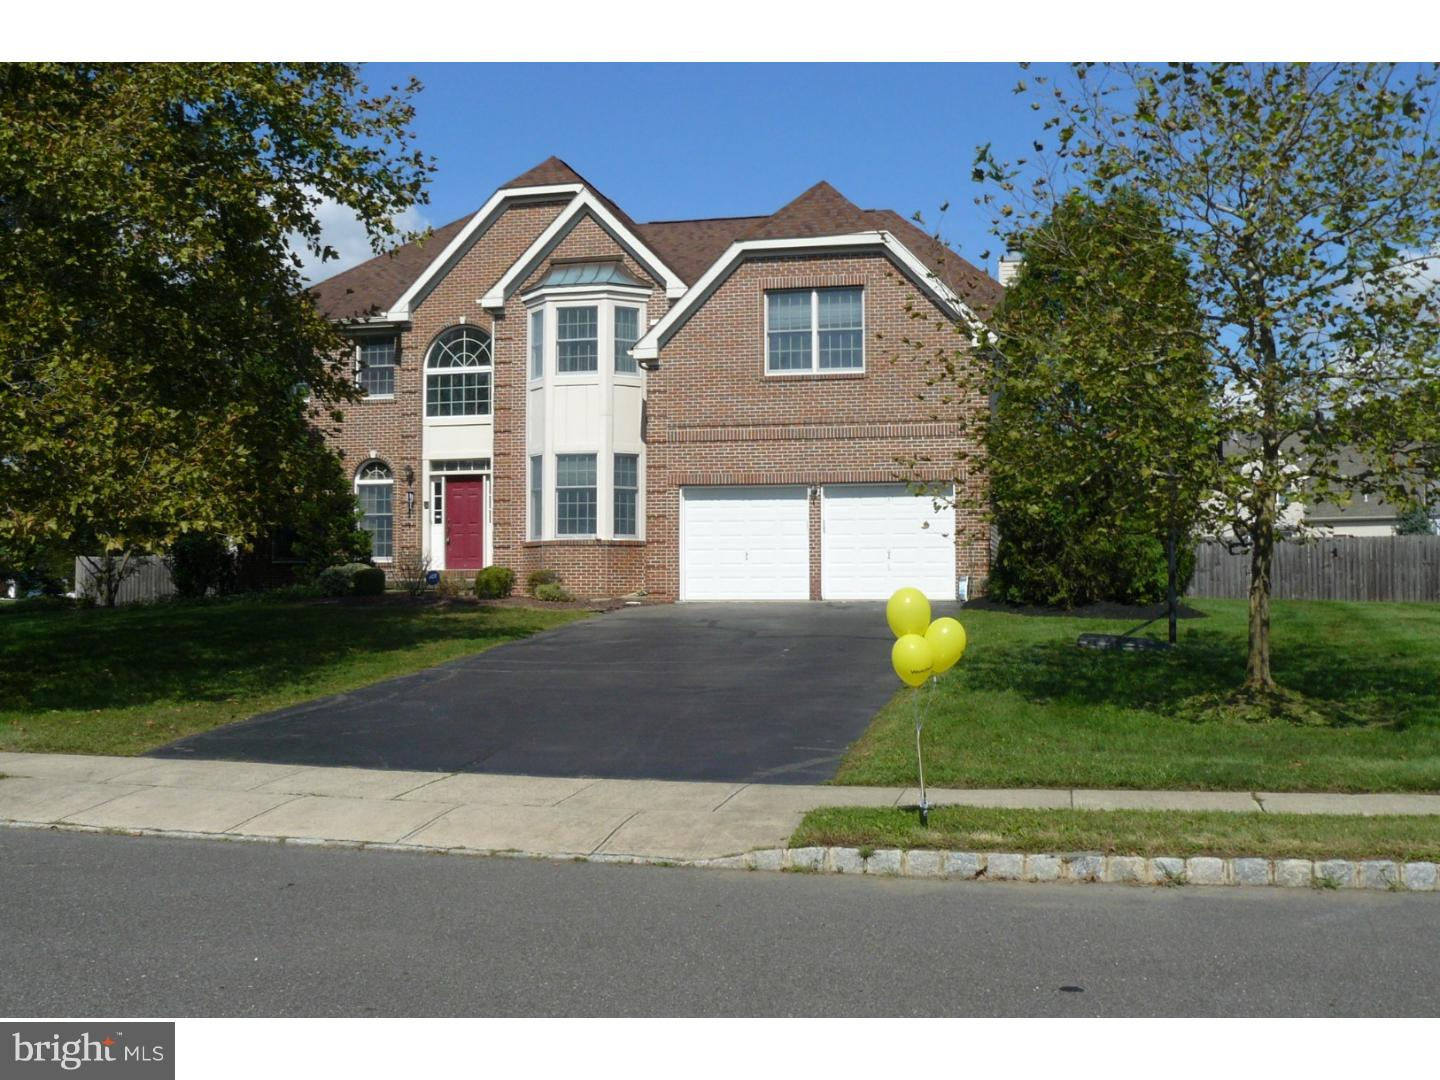 Single Family Home for Sale at 22 MILBURNE Lane Robbinsville, New Jersey 08691 United StatesMunicipality: Robbinsville Township